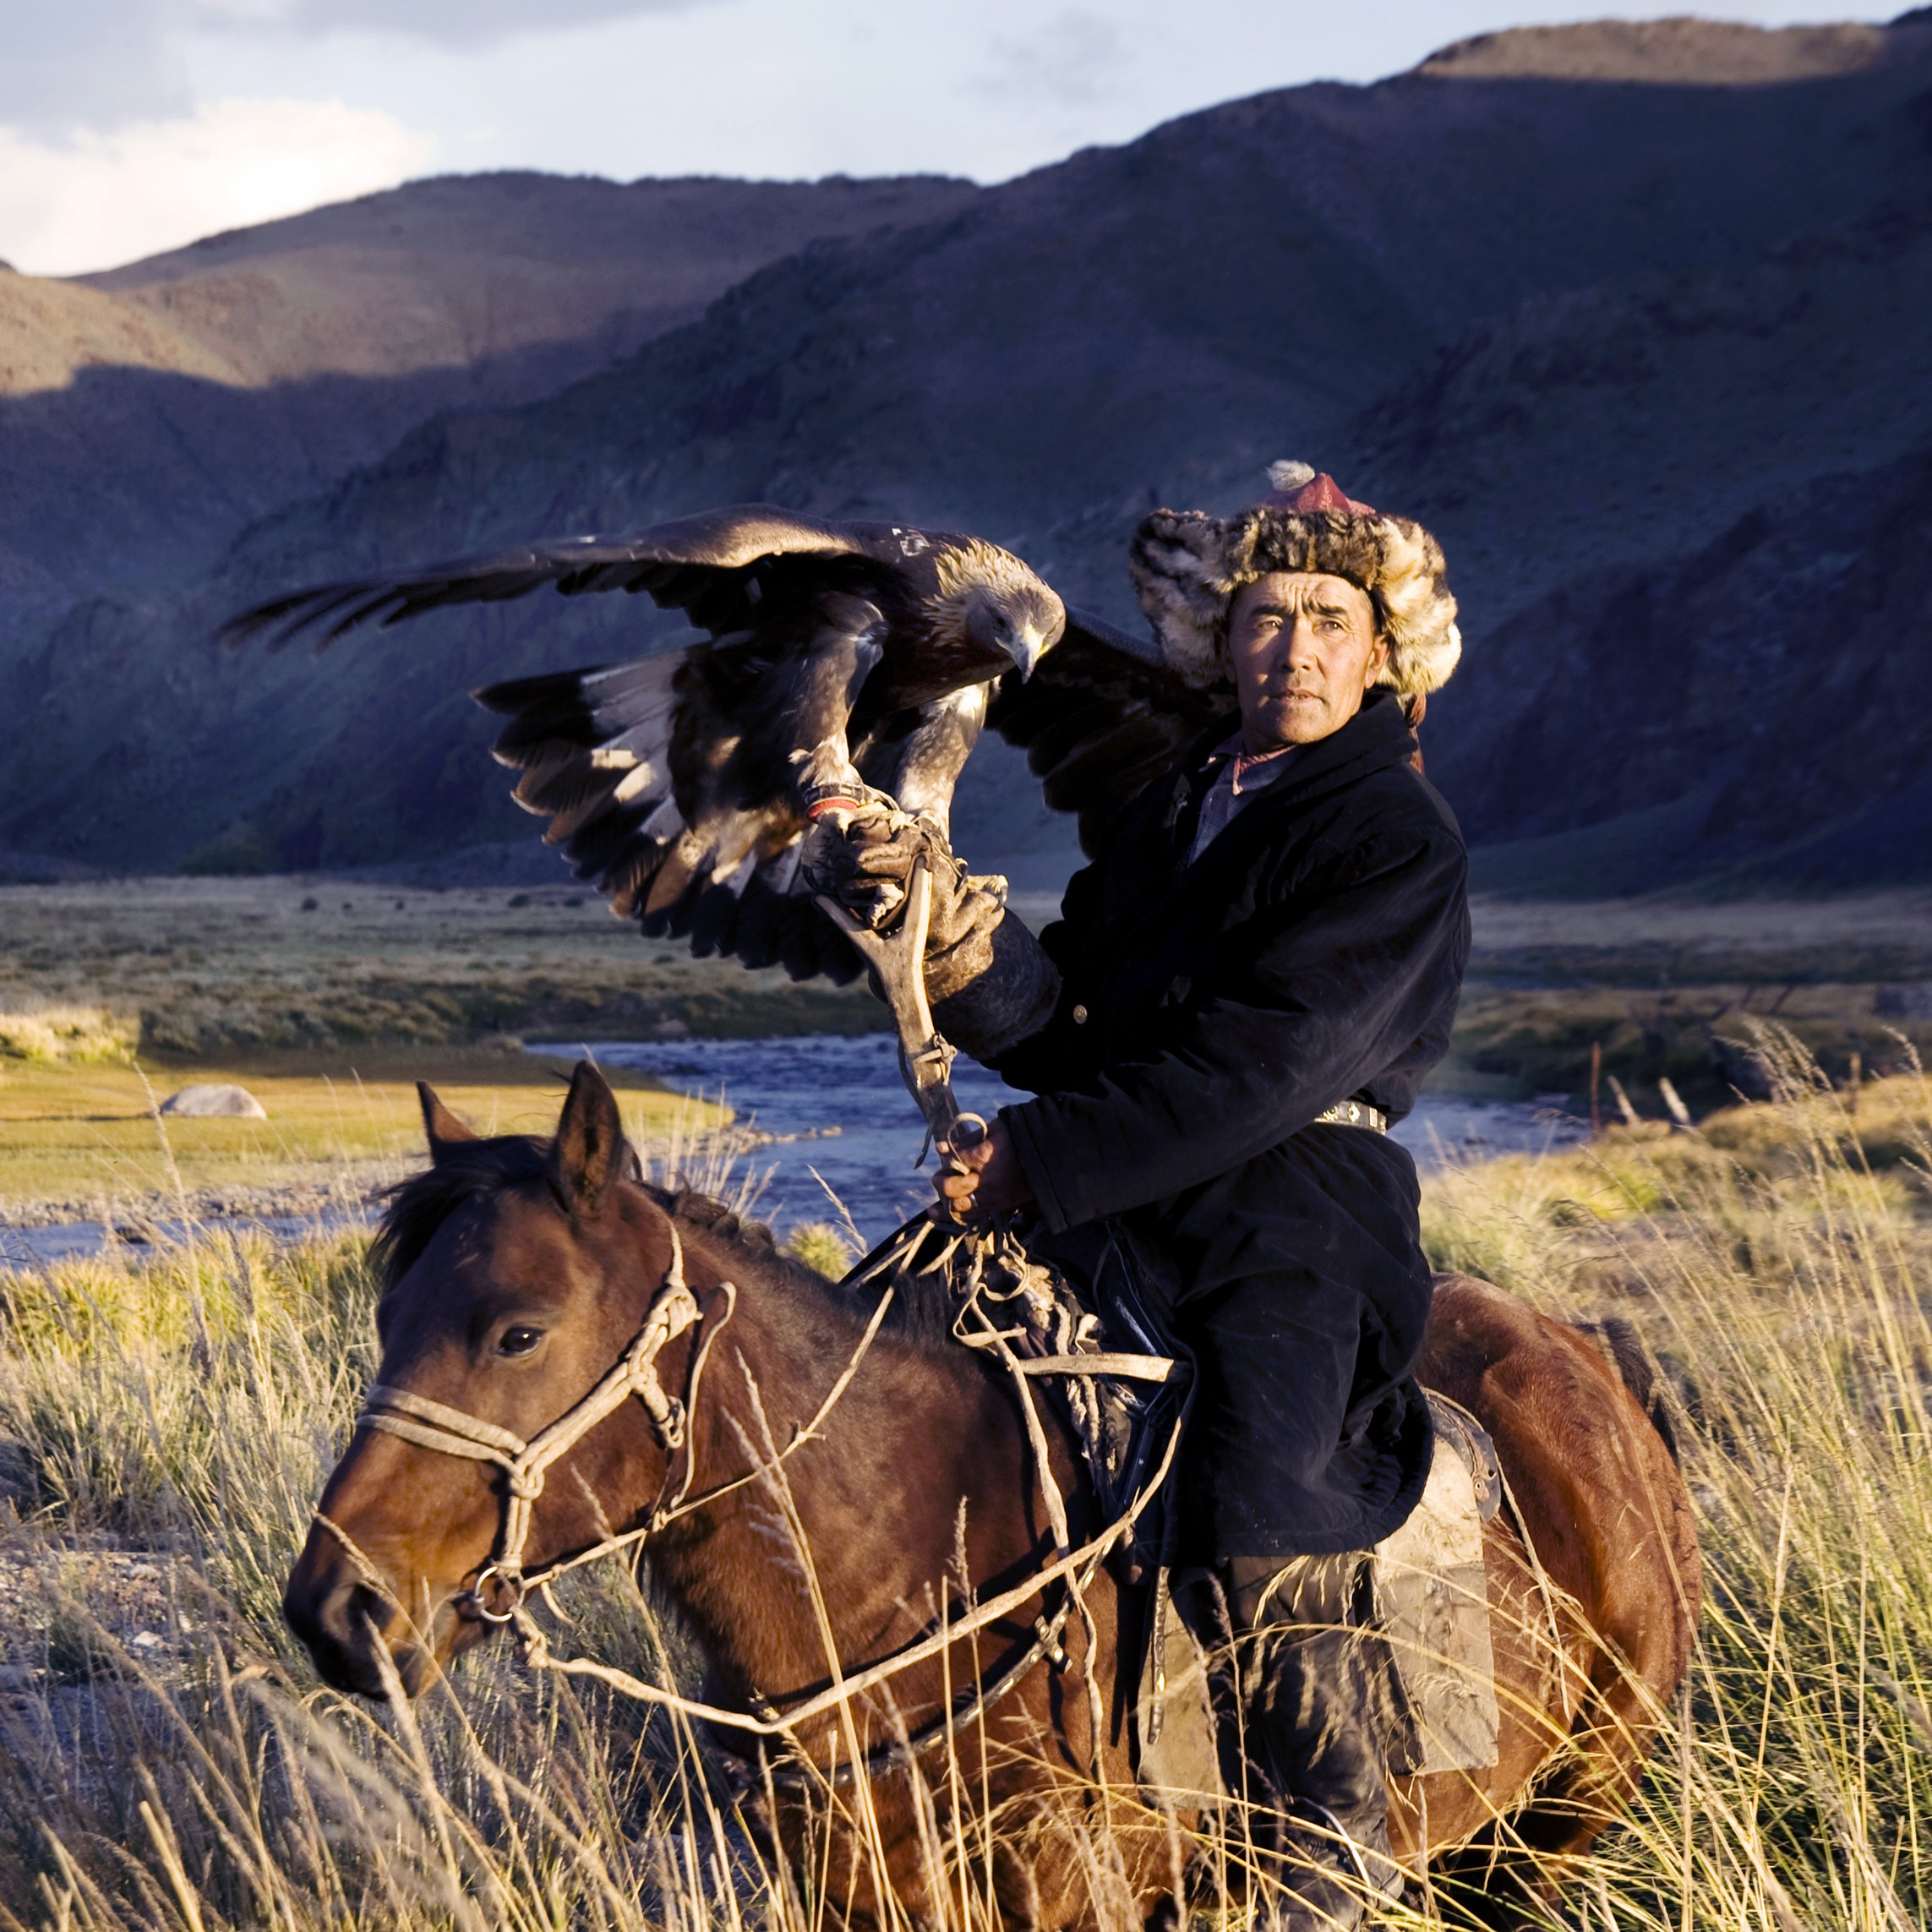 Kazakh+Eagle+Hunter